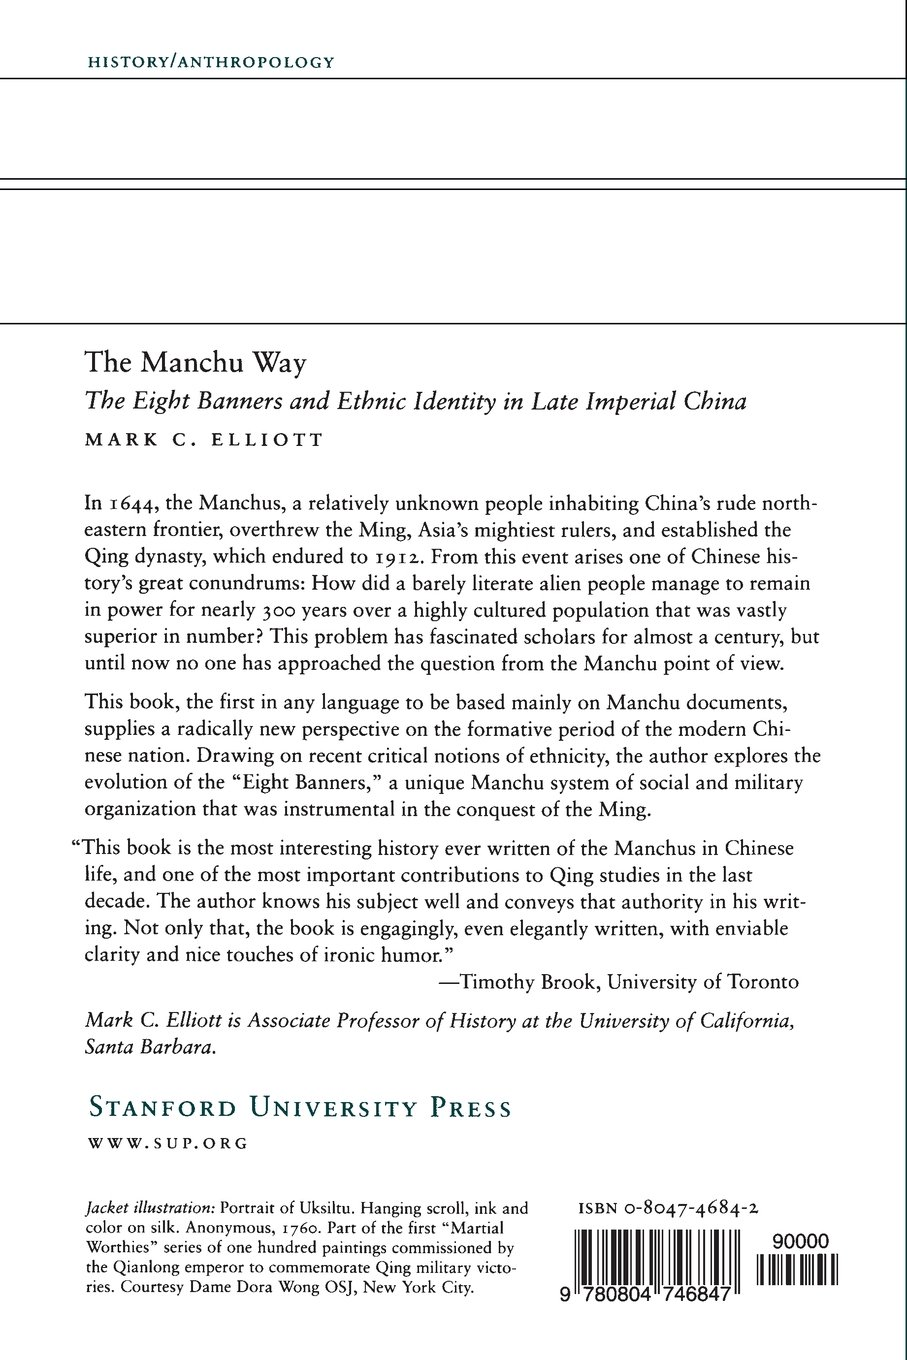 The Eight Banners and Ethnic Identity in Late Imperial China The Manchu Way